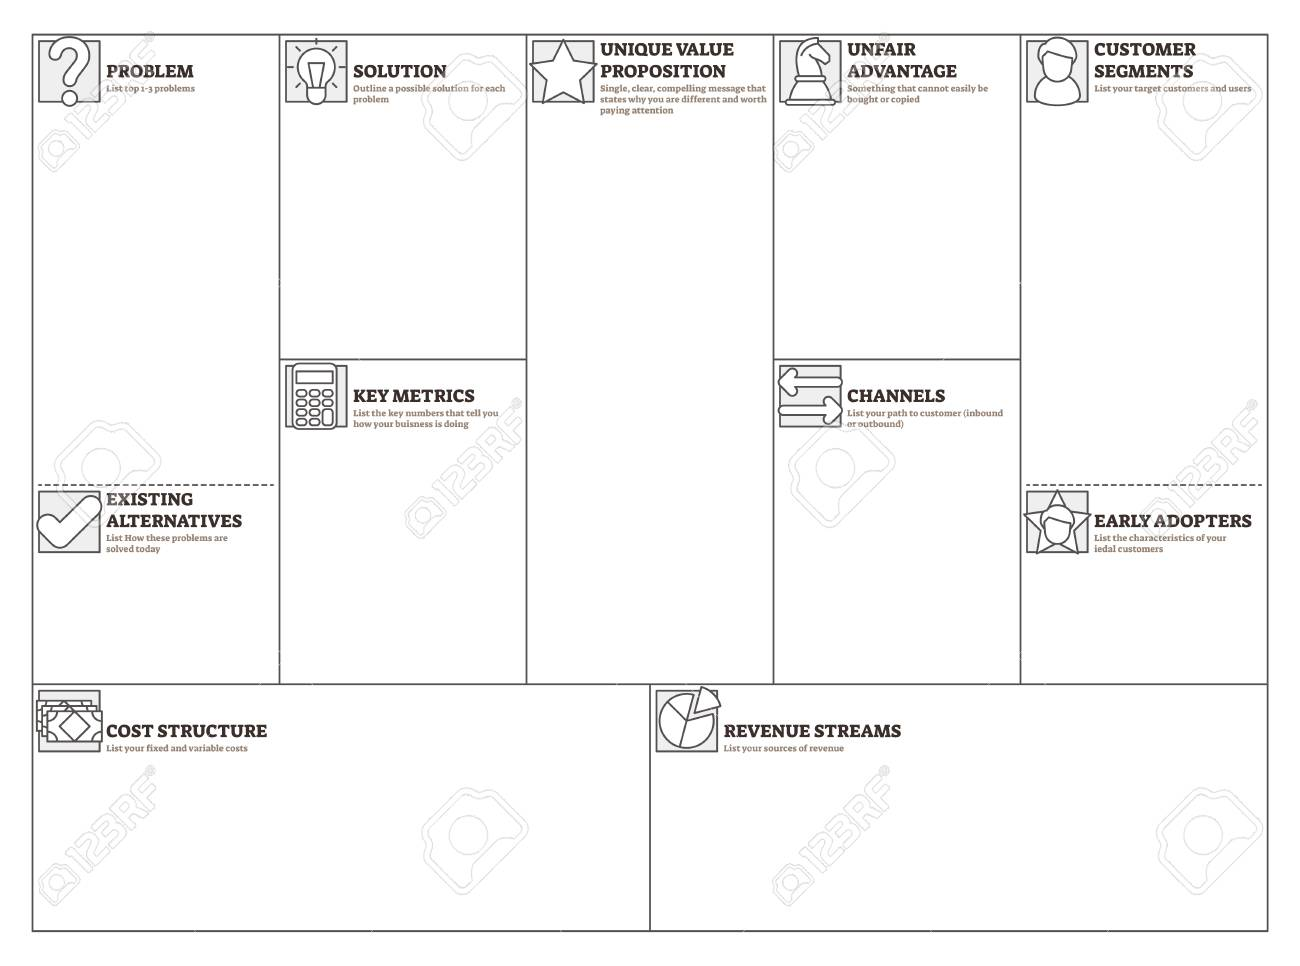 Lean canvas vector illustration. Business plan presentation blank template table. Alternative and effective tool for entrepreneurs. Simple method that helps deconstruct idea into its key assumptions. - 123463604